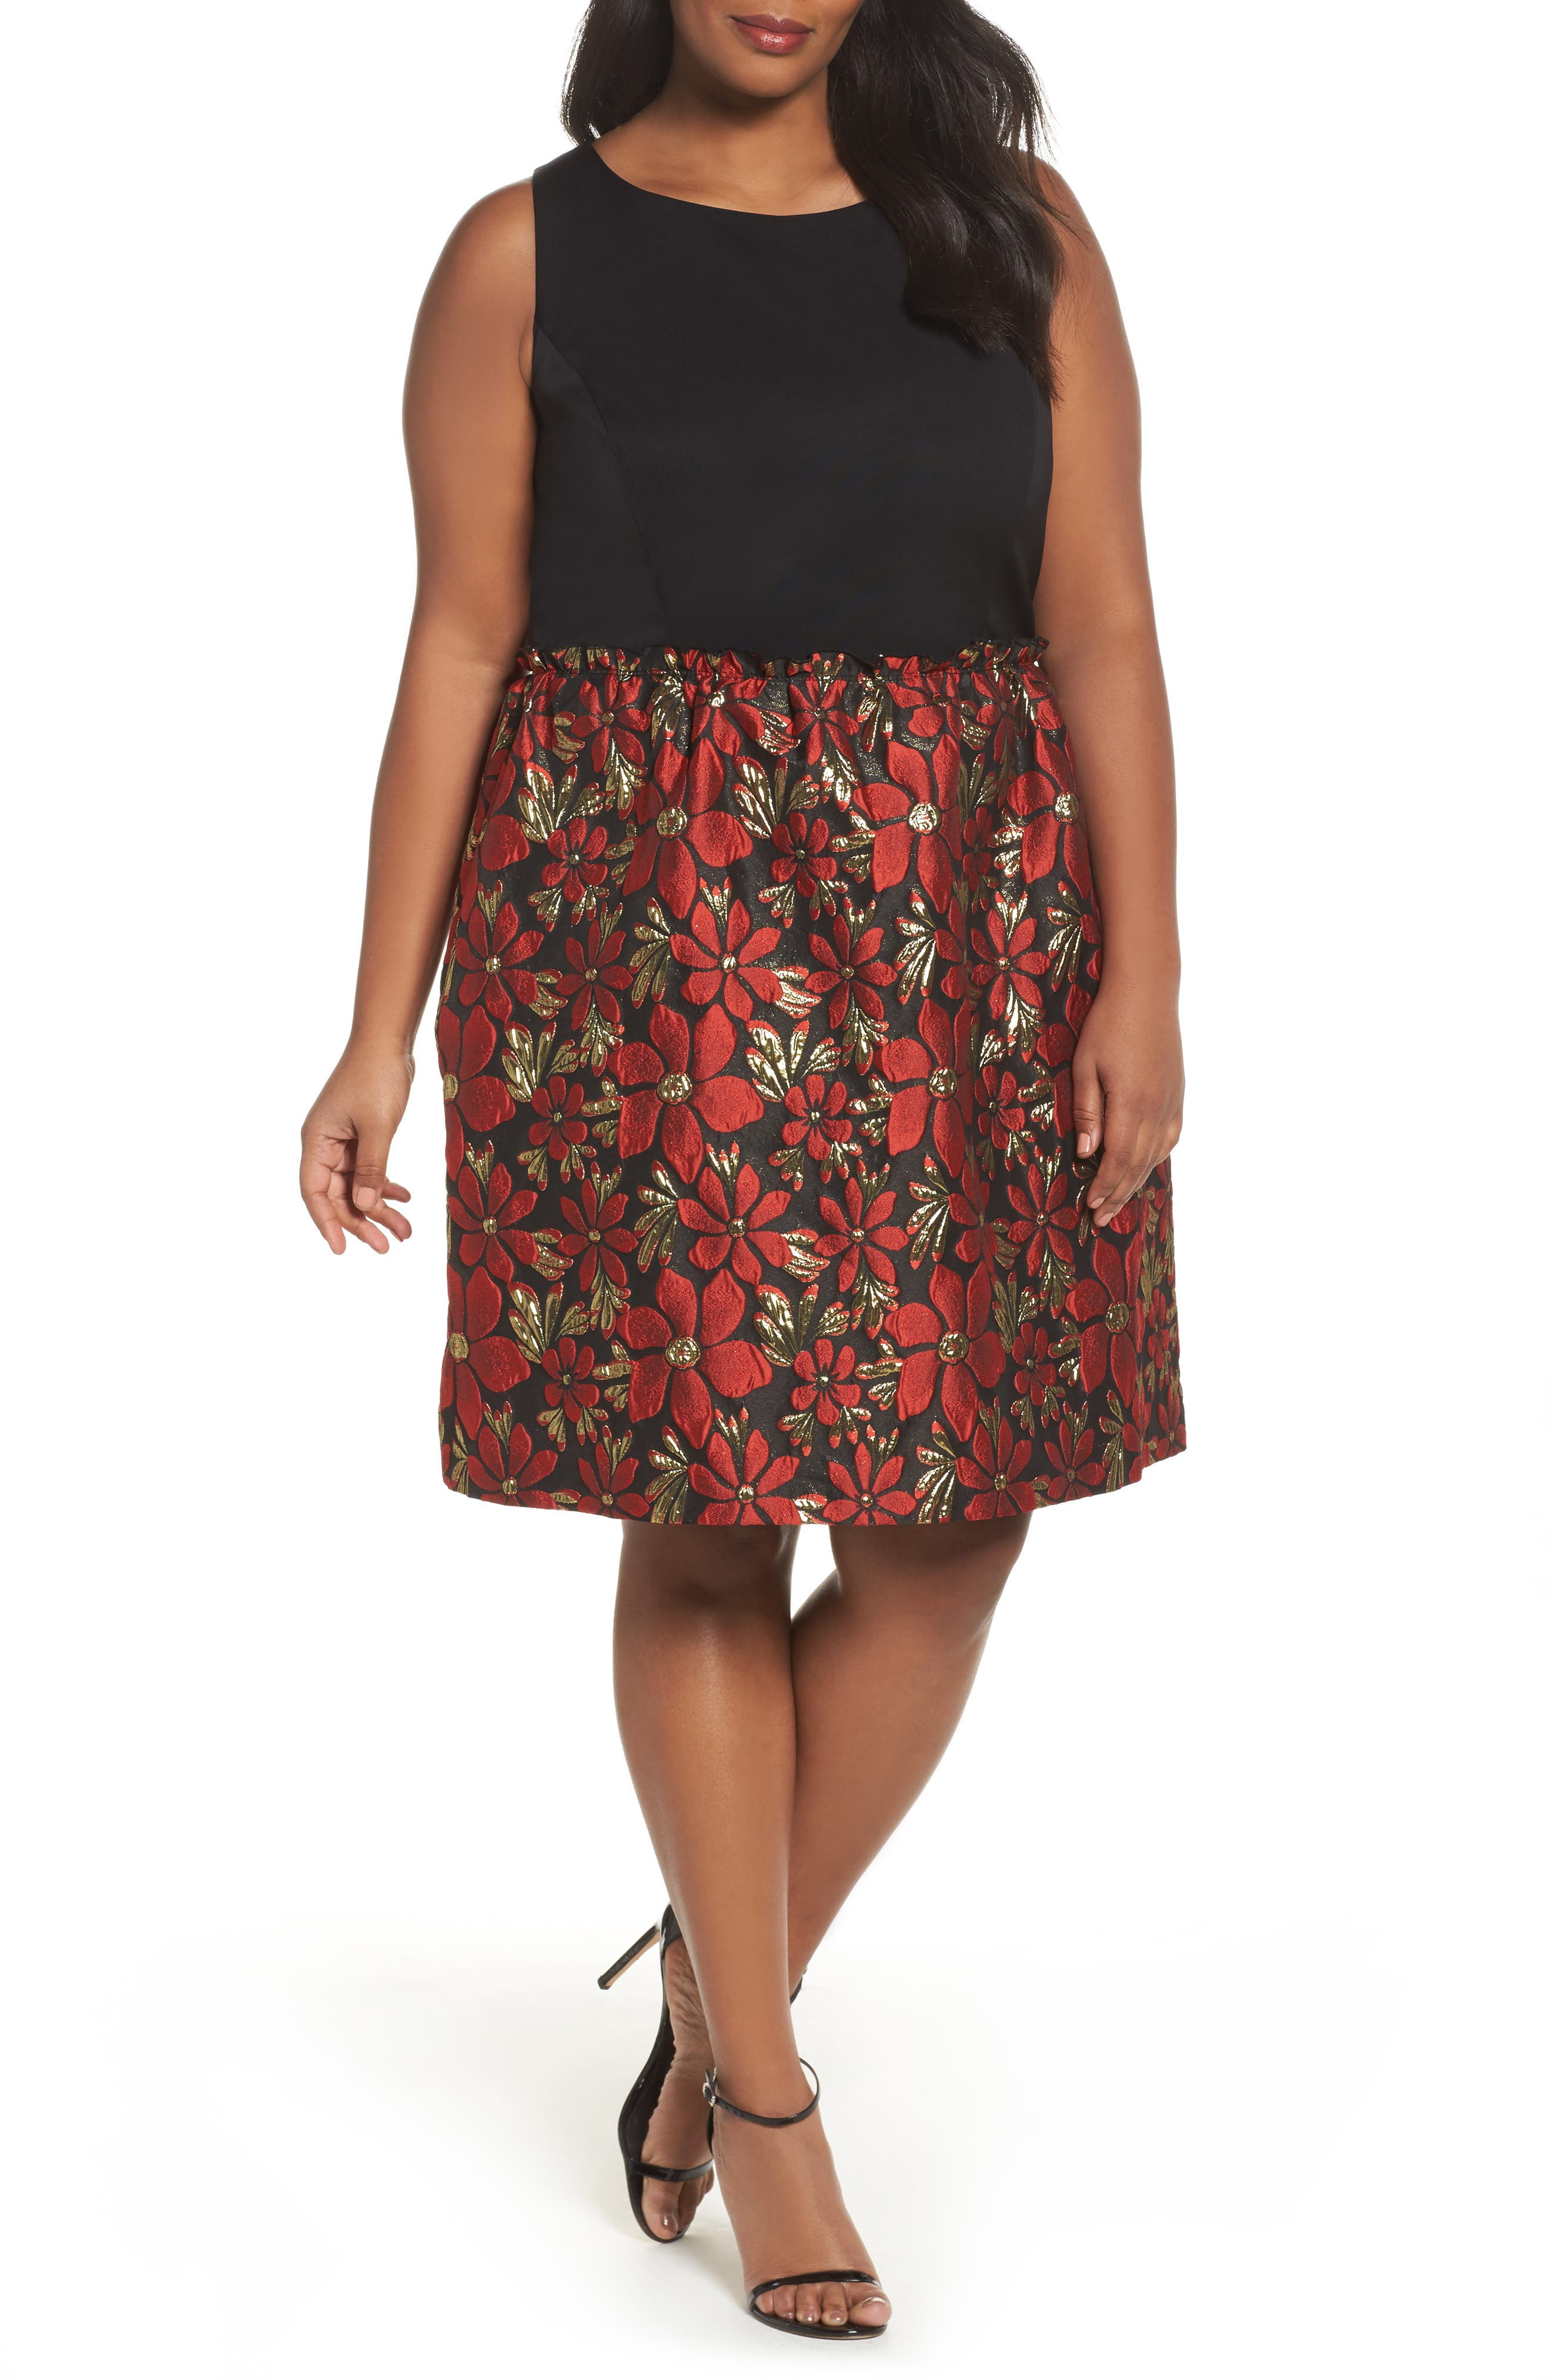 Sleeveless Jacquard Fit & Flare Dress,                         Main,                         color, Black/ Red/ Gold